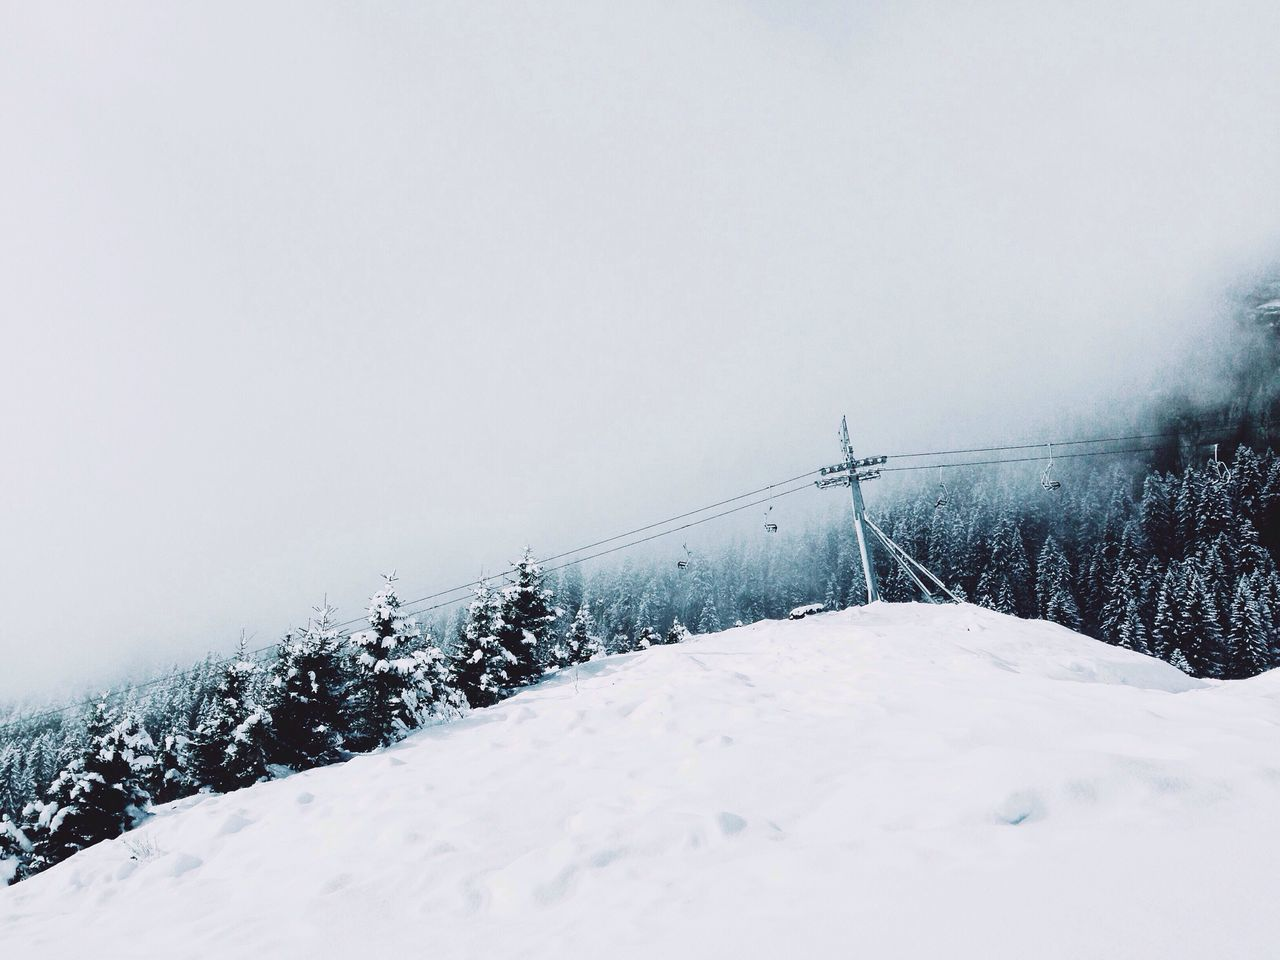 Snow Winter Cold Temperature Weather Nature Frozen Beauty In Nature Tranquility No People Tranquil Scene Outdoors Tree Day Sky Ski Minimalism